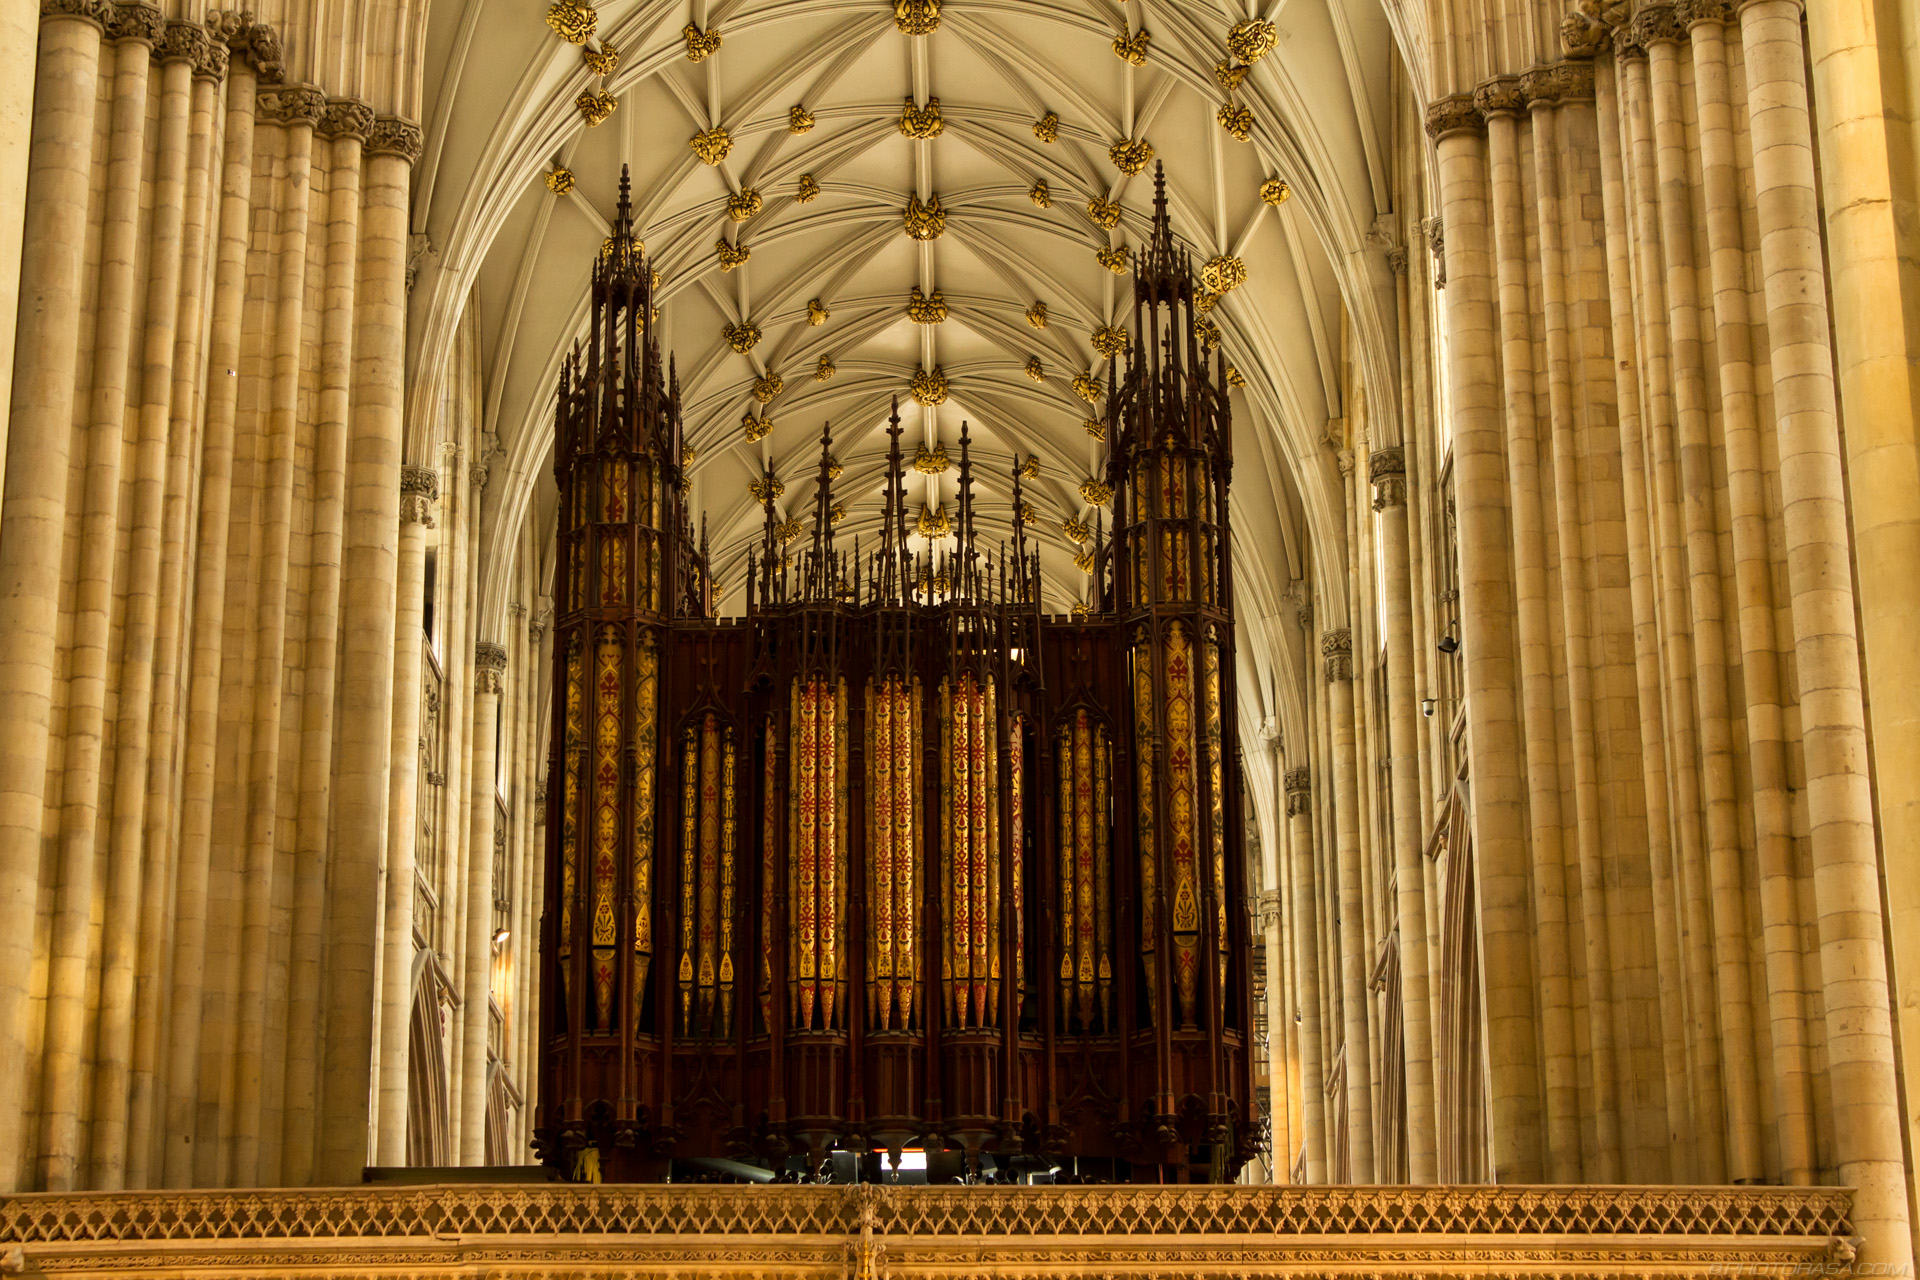 http://photorasa.com/yorkminster-cathedral/decorative-organ/